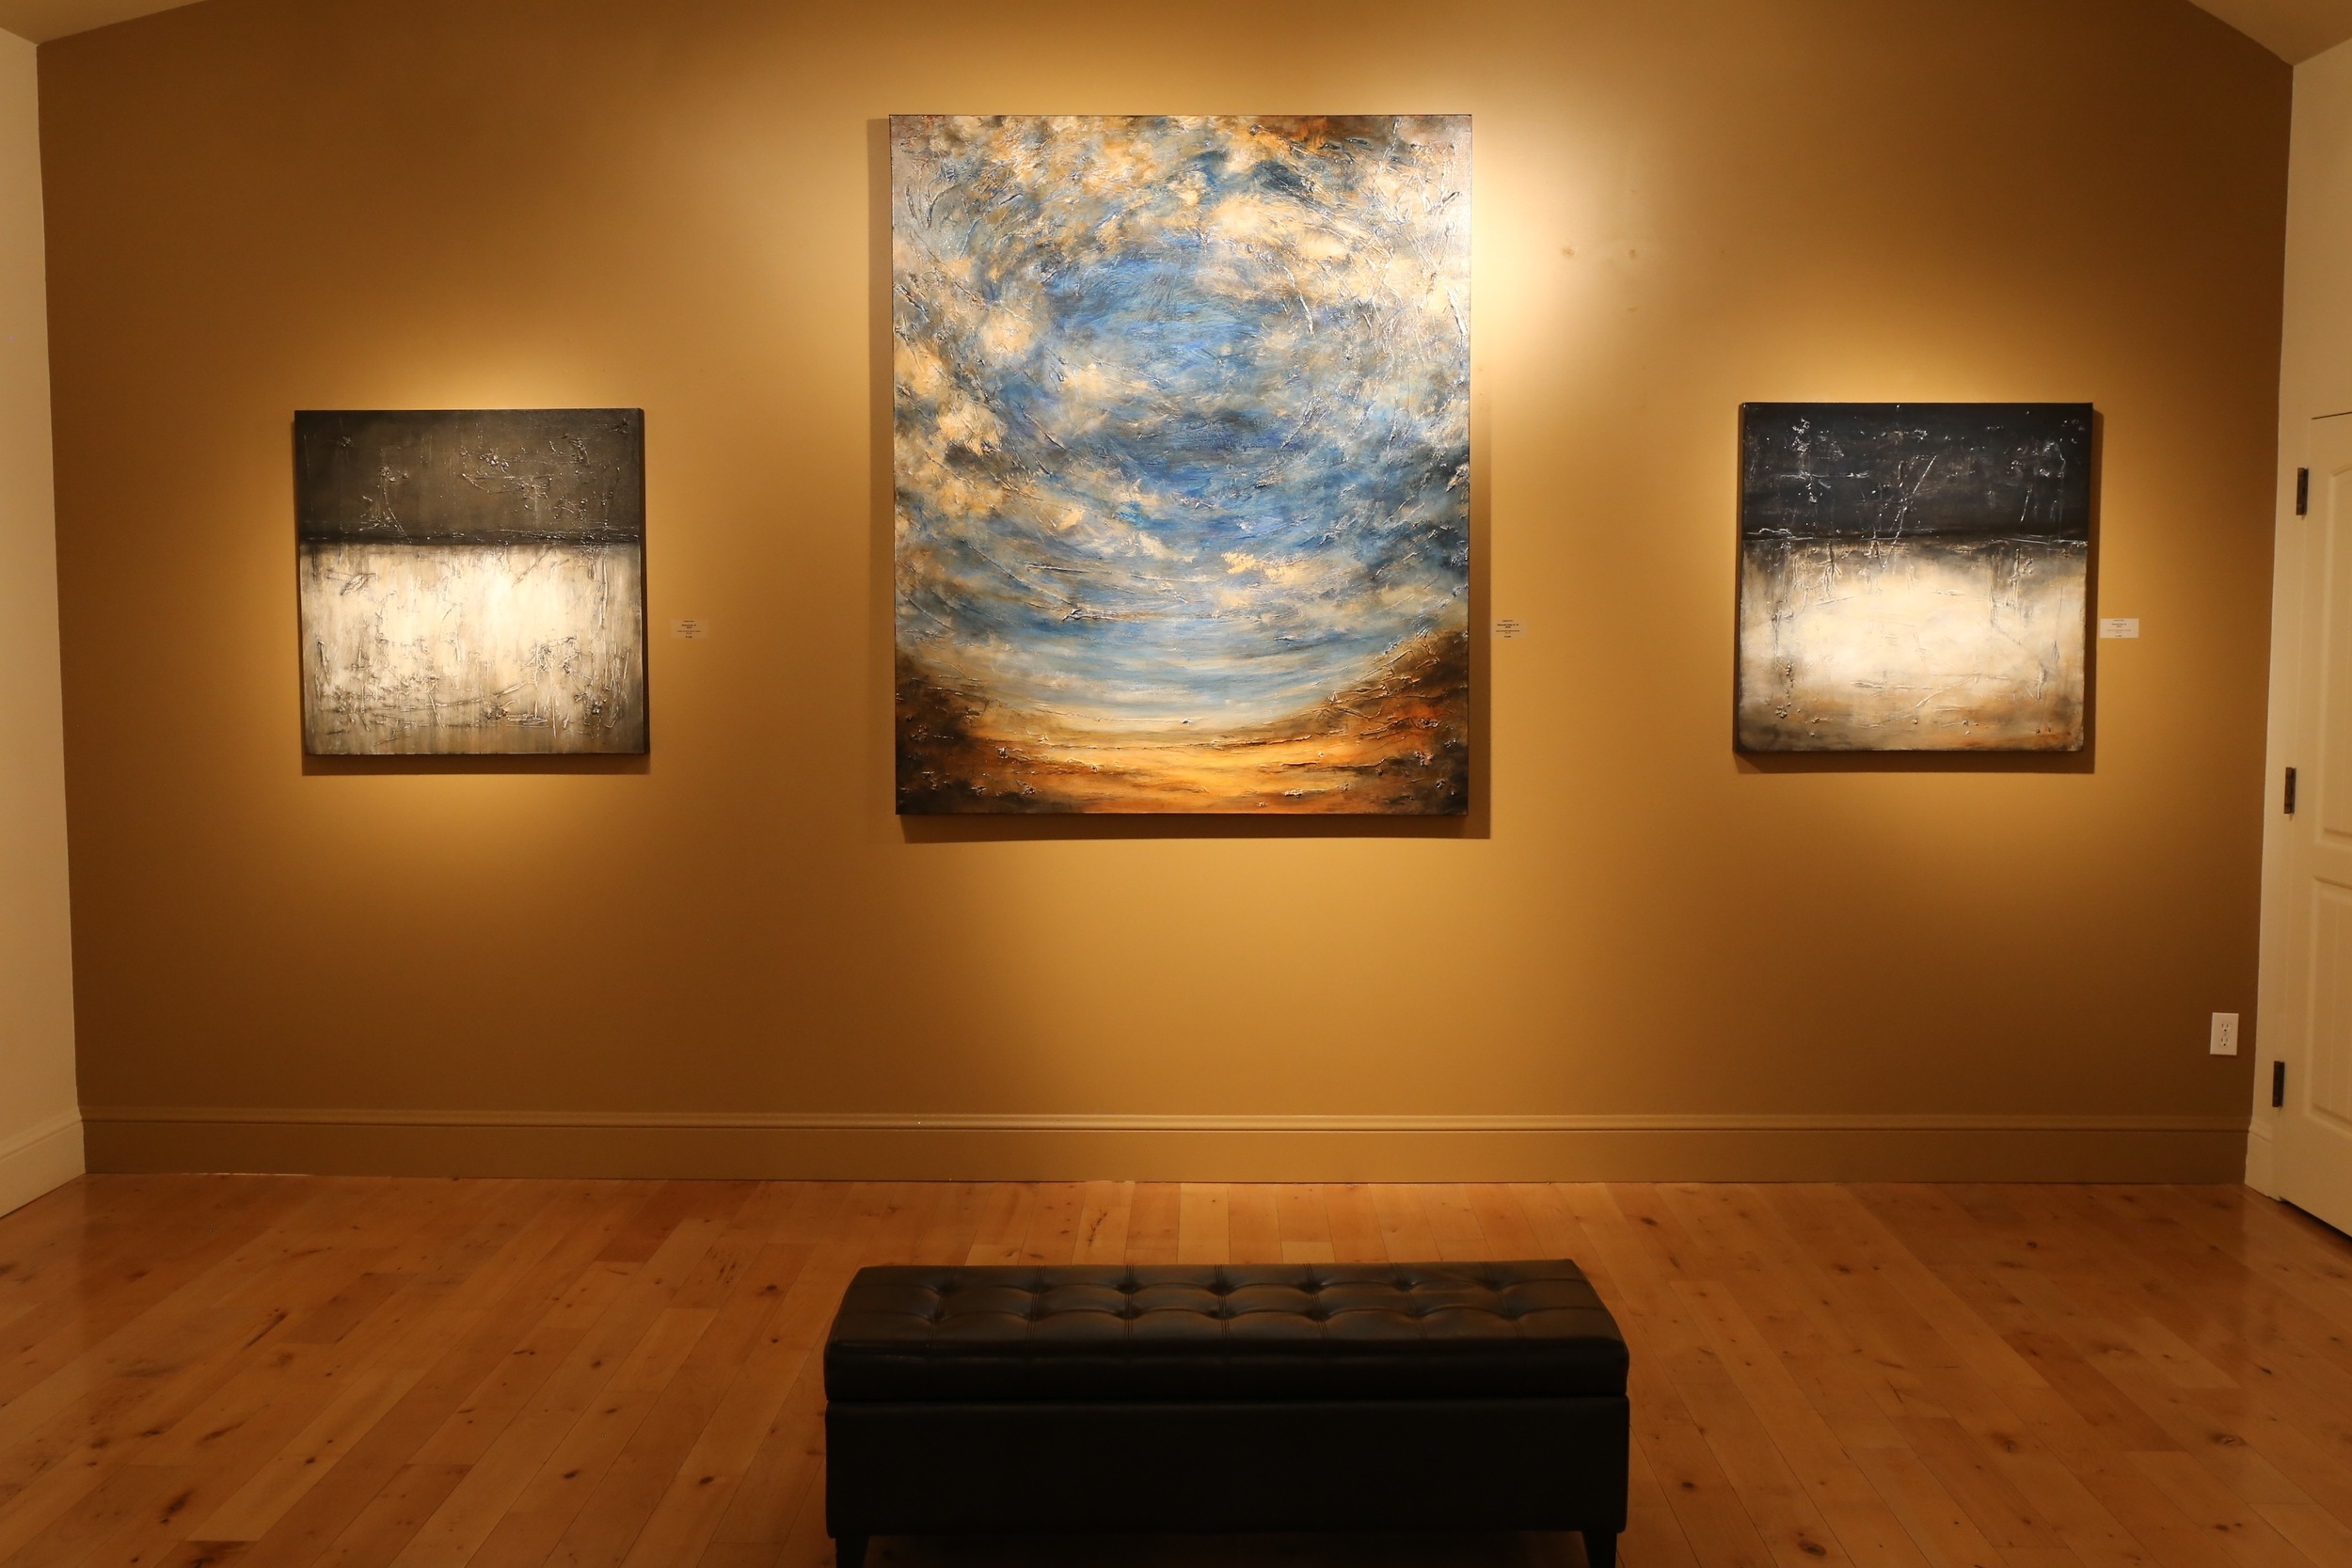 James Frey, Winemaker at Trisaetum, also shares his renowned paintings at the Tasting Room